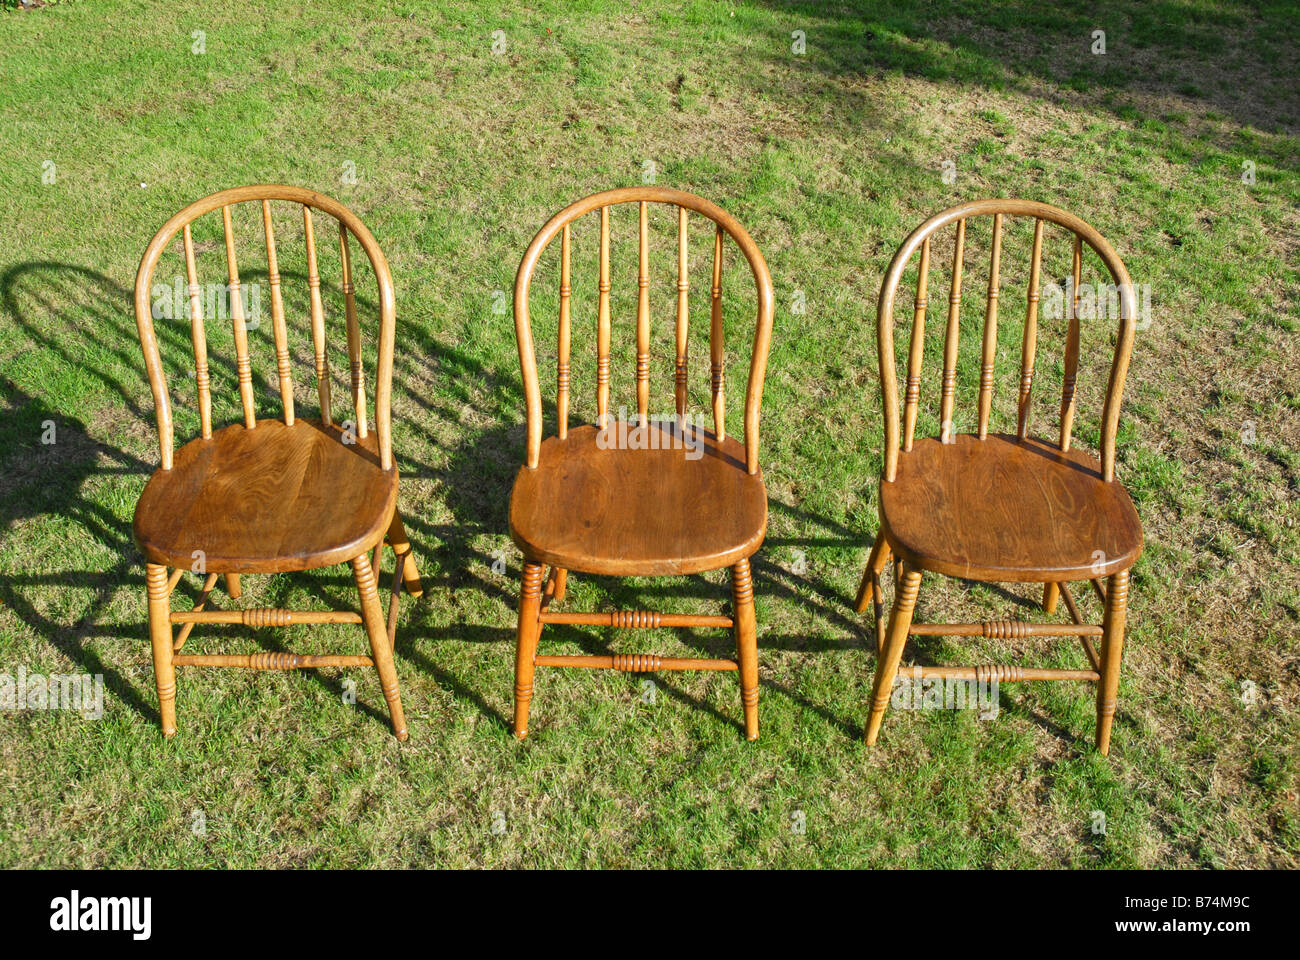 Group Of Three Bentwood Chairs, All Polished, Standing On Grass